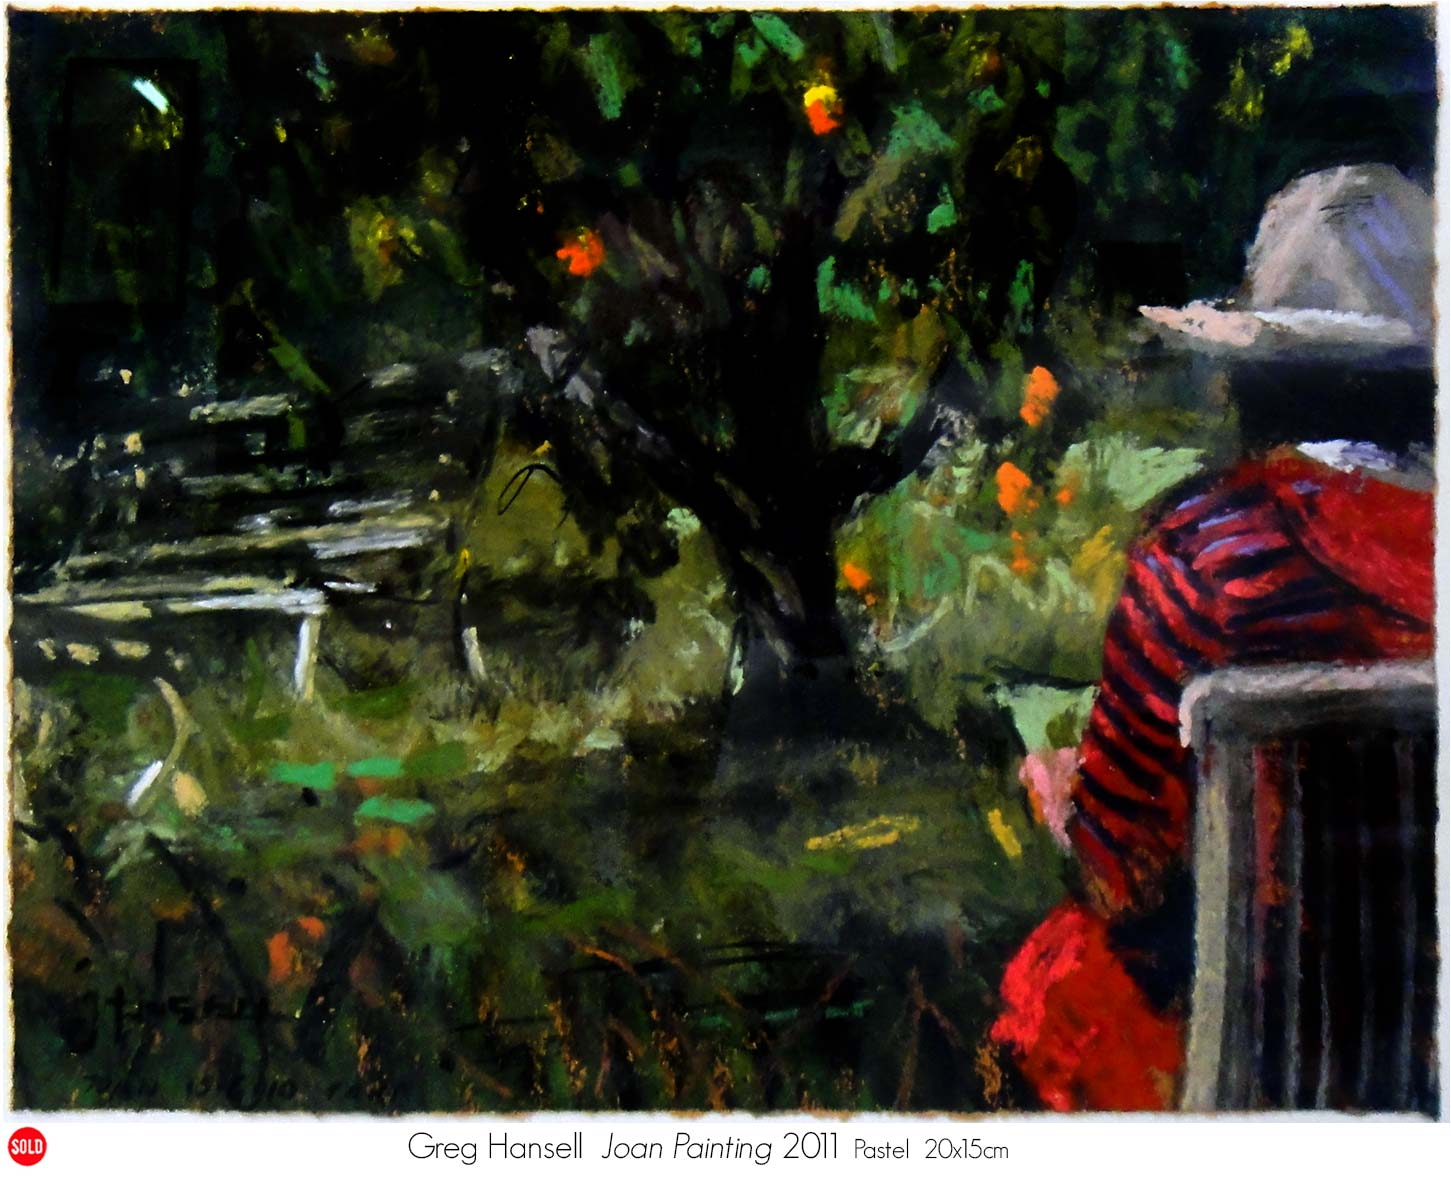 Greg Hansell - Collector's Choice 2011. Artsite Gallery,  26 November - 11 December 2011.